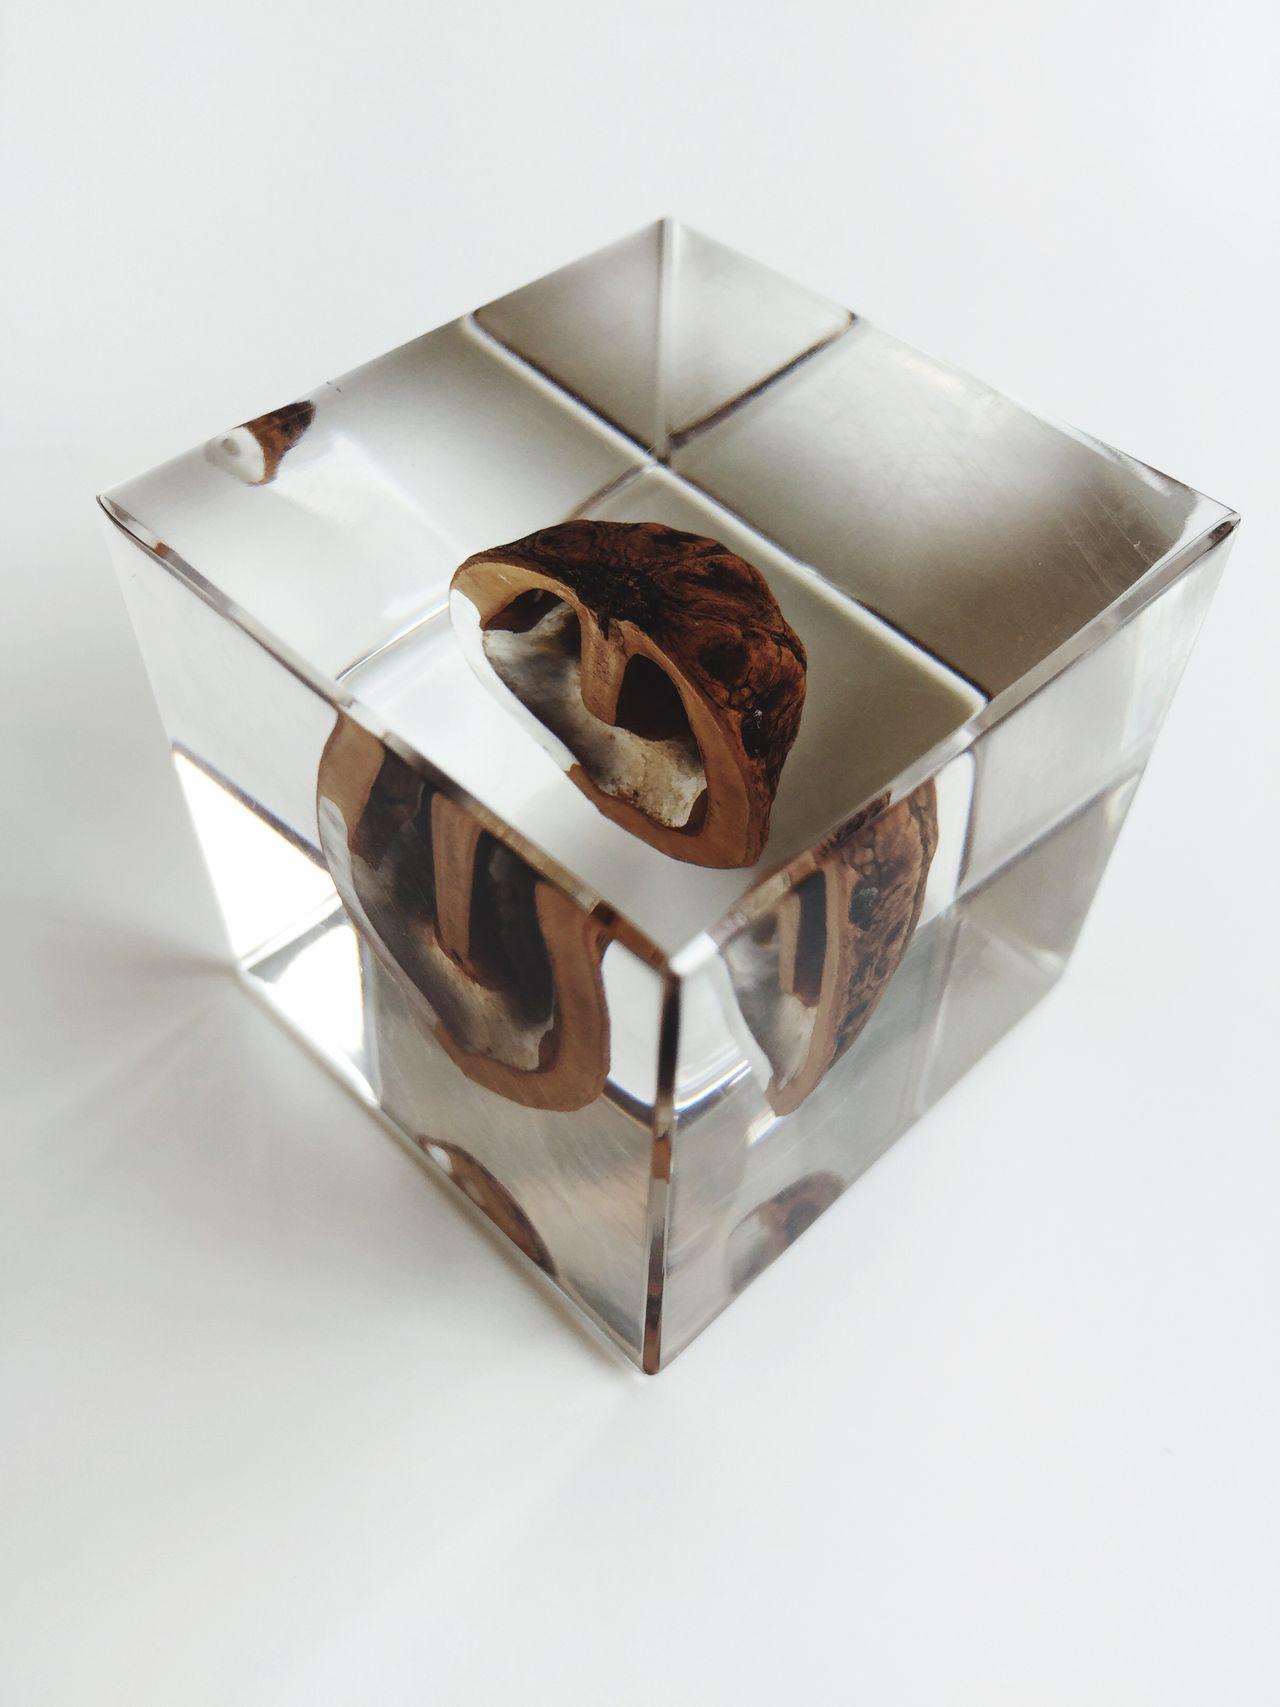 Cube with walnut;paperweight ArtWork Art Cube Art, Drawing, Creativity Art And Craft Paperweight Transparent Paperweights Acrylic From My Point Of View Transparency Simplicity White White Album Tokyo